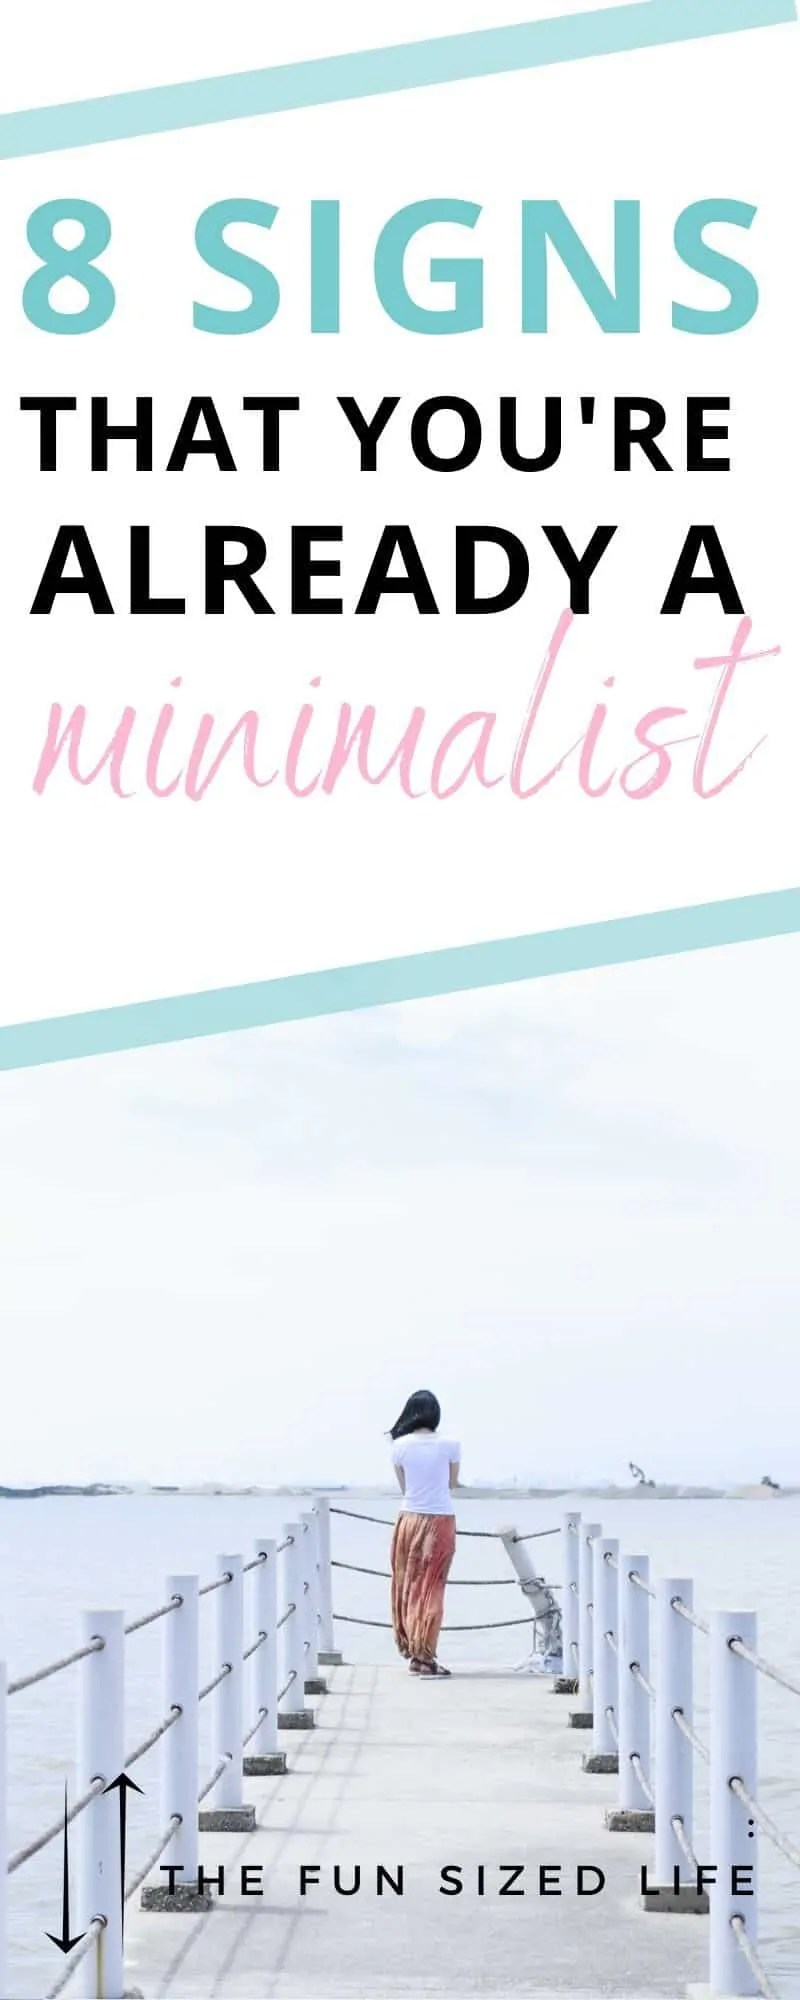 There are some serious signs that you might already be a minimalst. This list of 7 red flags can help you decide if minimalism is right for you.